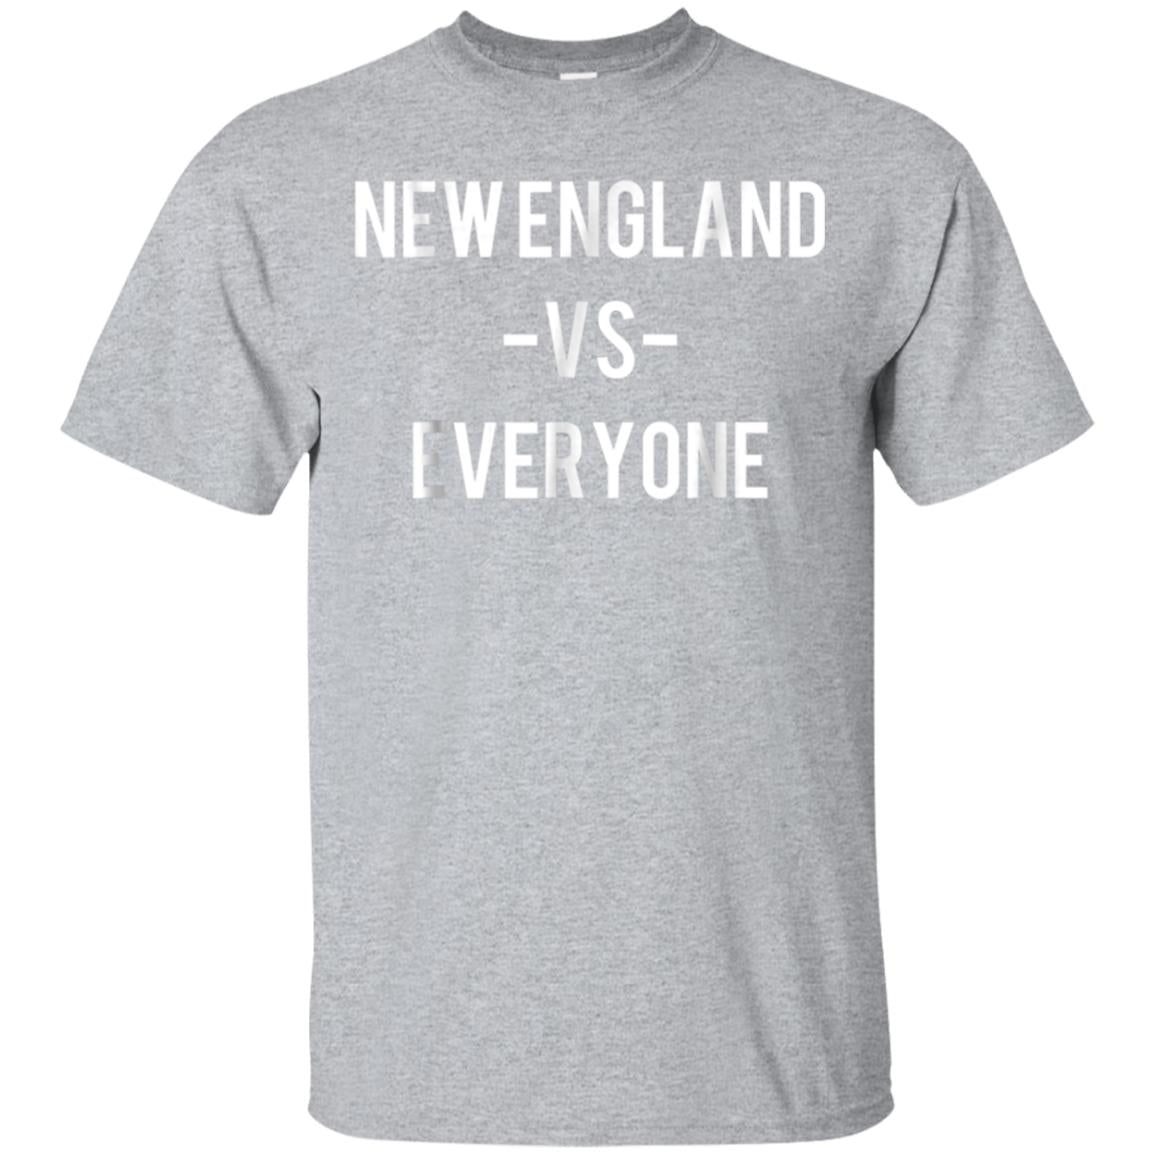 New England VS Everyone Shirt 99promocode